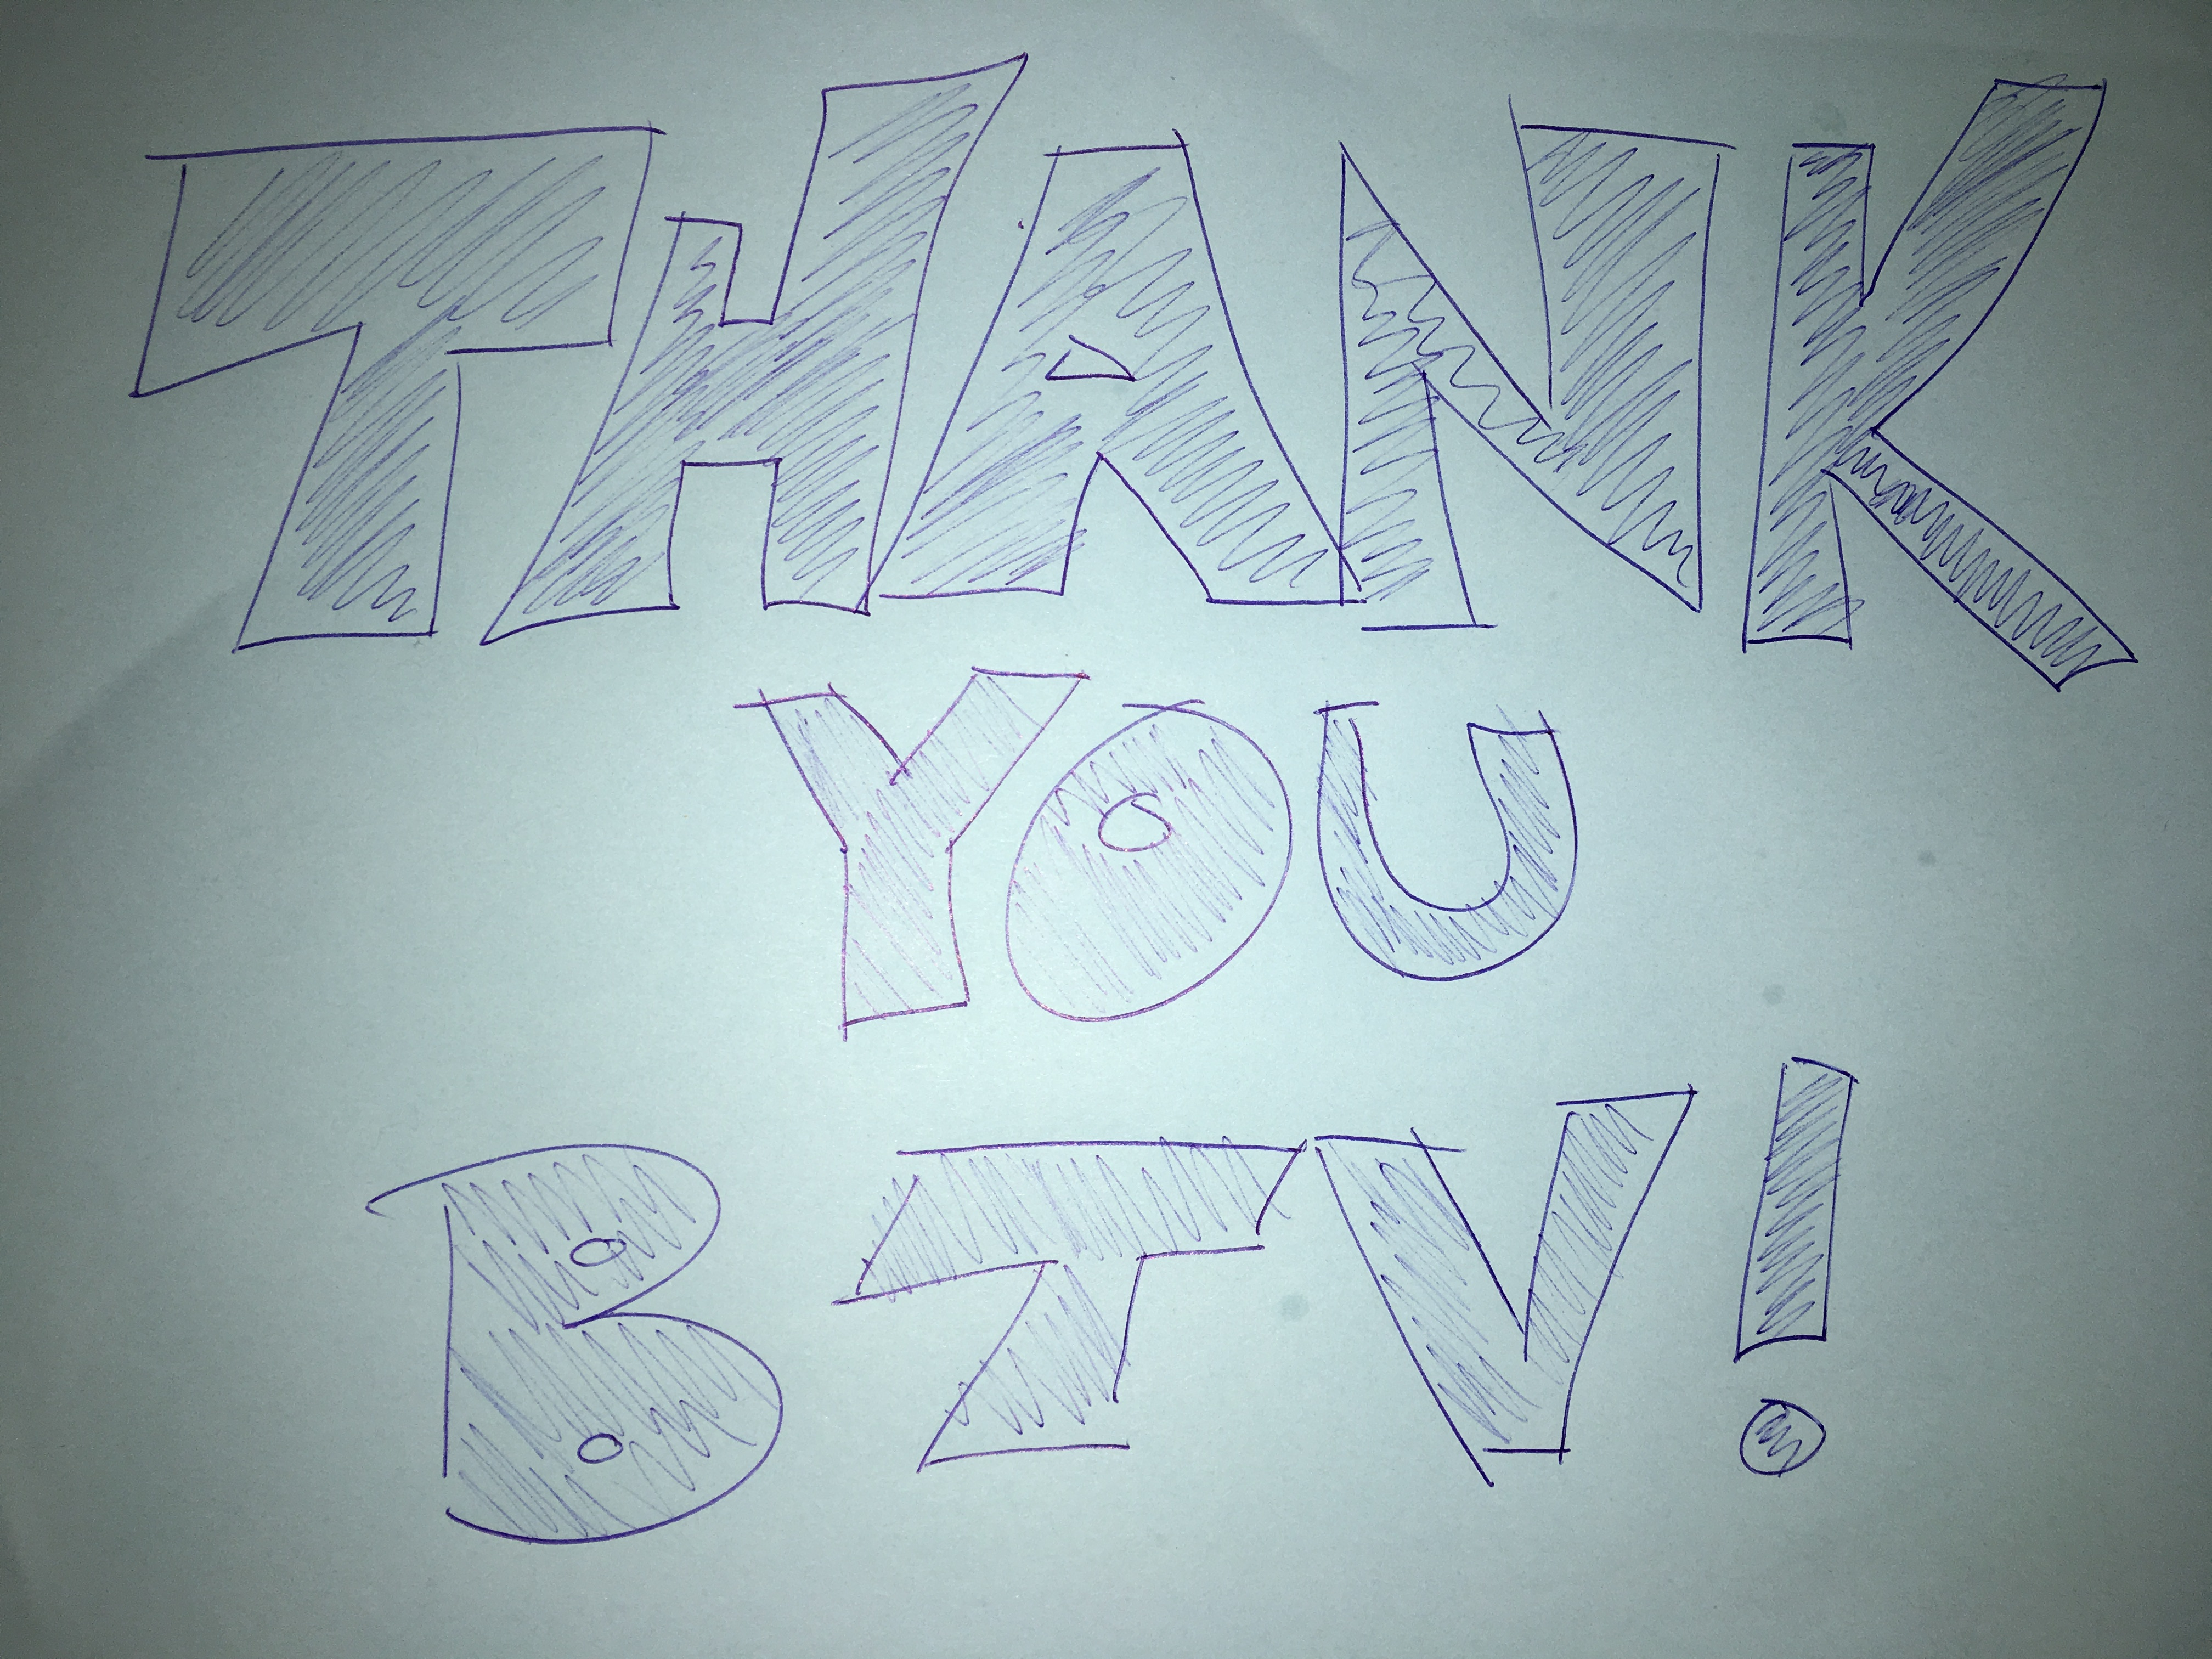 Thank you BTV